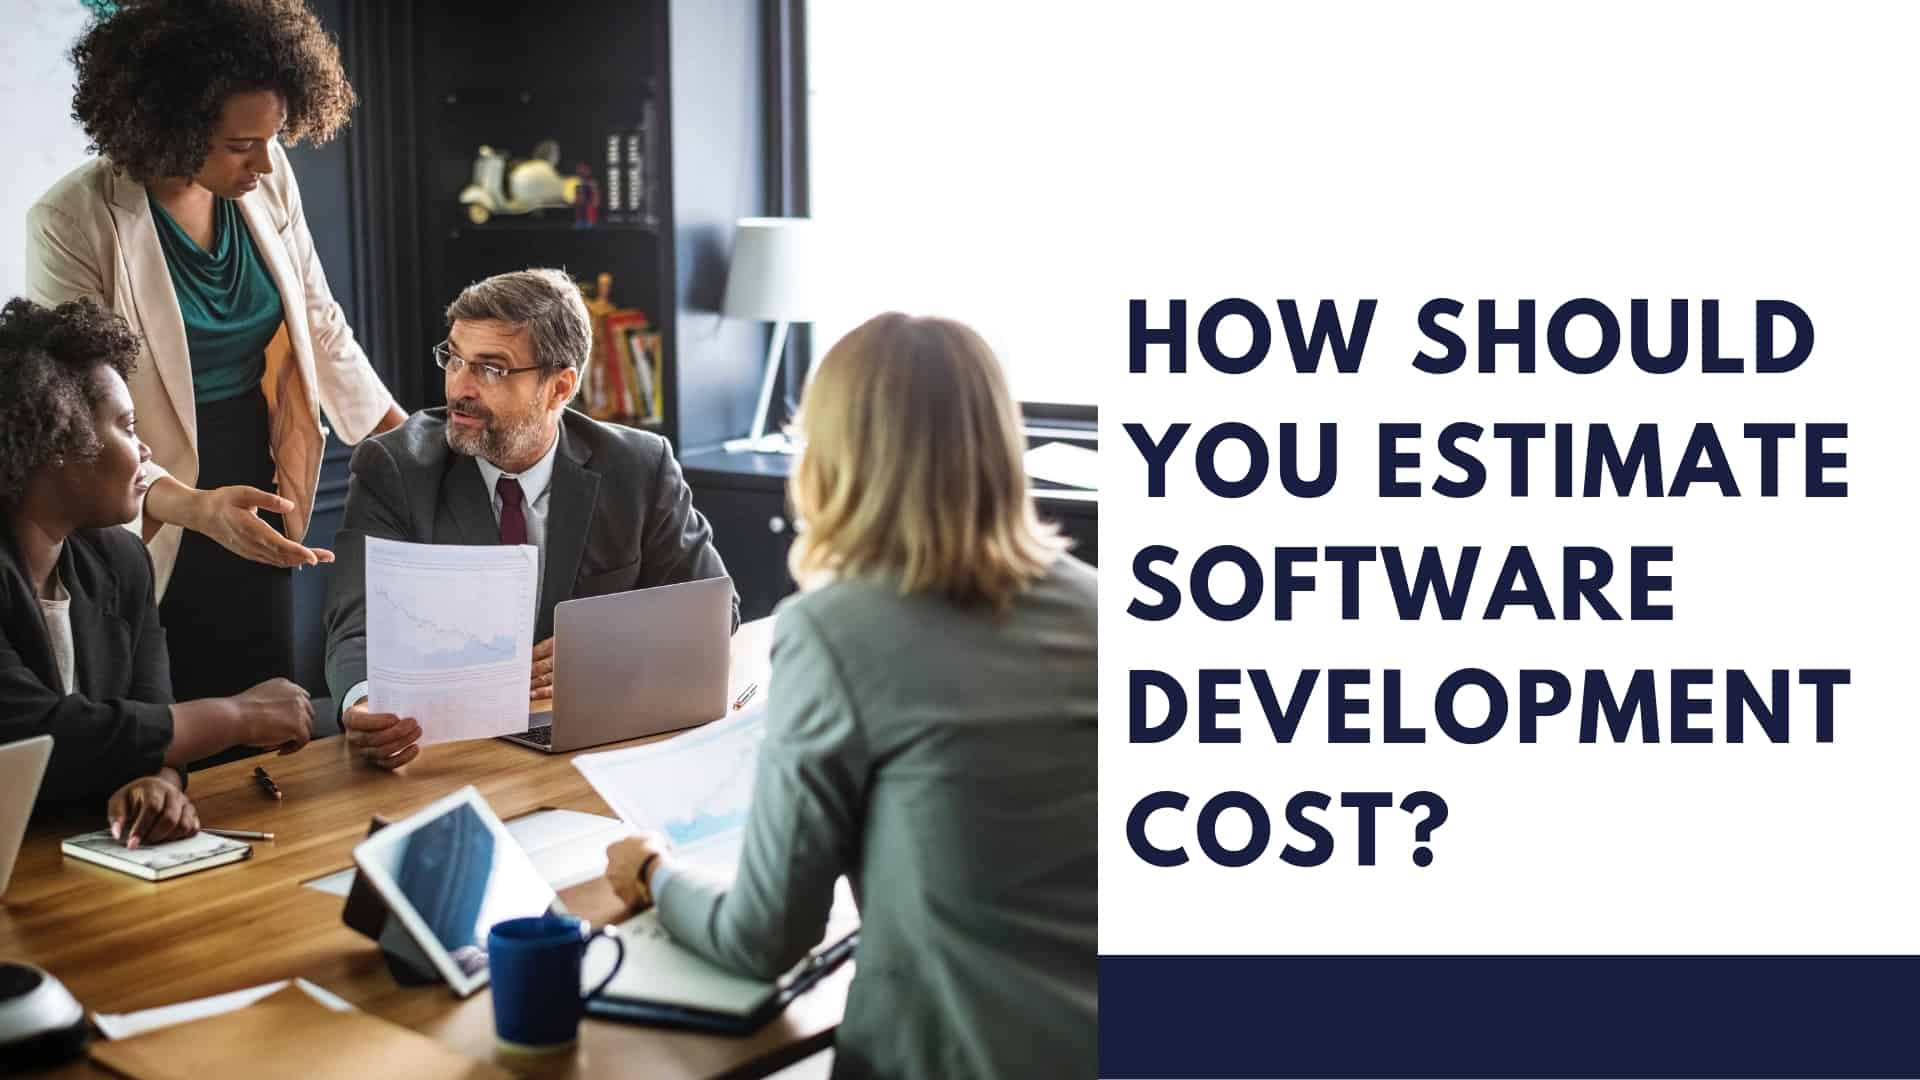 How Should You Estimate Software Development Cost?